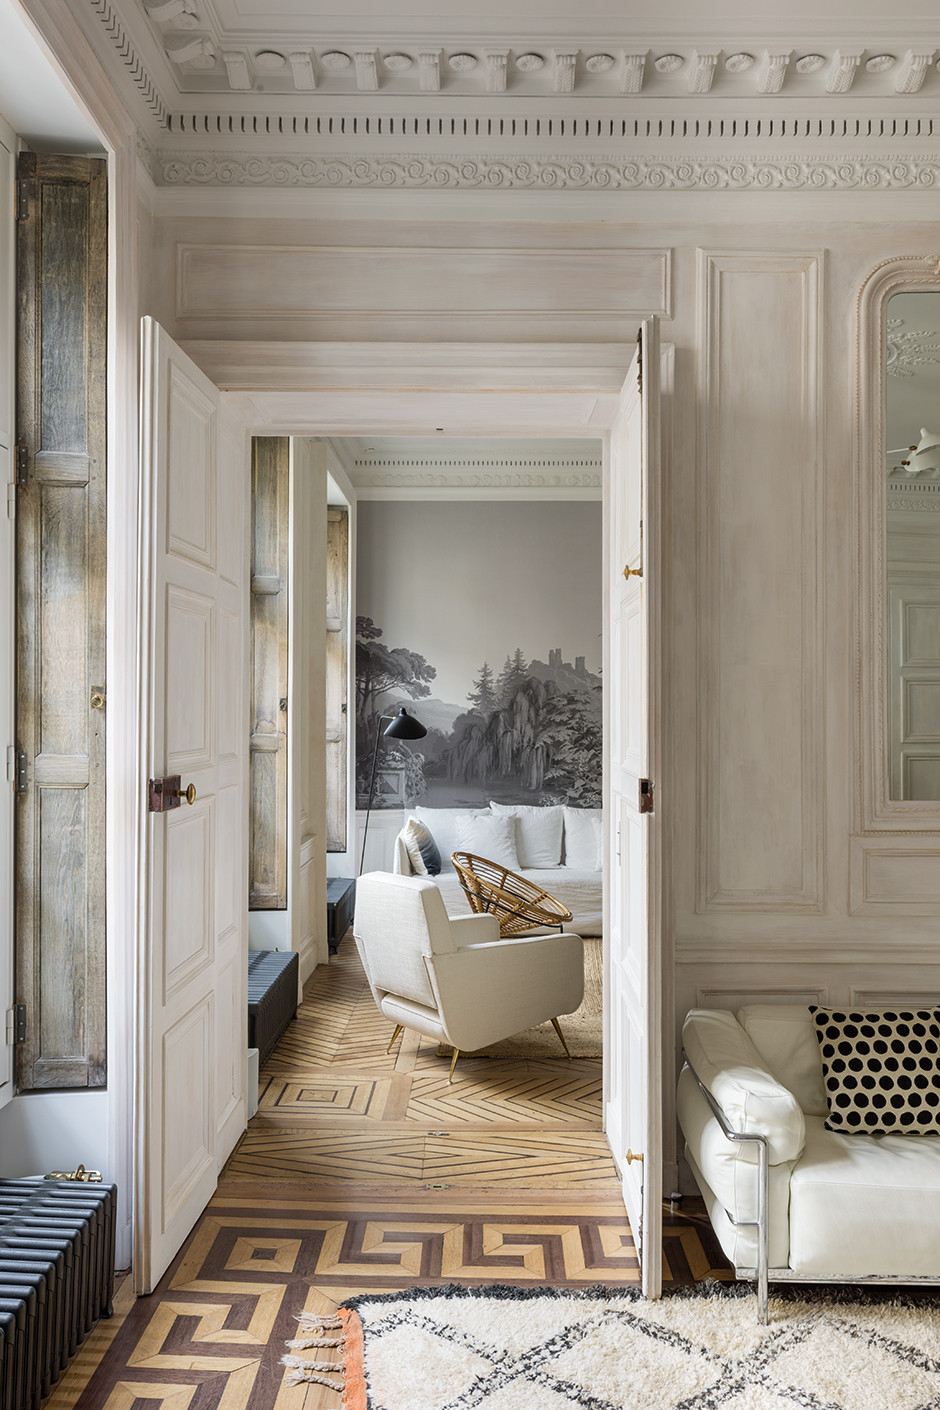 The owner of this Paris apartment, Alice Razavi, lives in the United States and purchased the space to use as a vacation home for her family. French architect Alireza Razavi was called in to renovate the home, which is in disrepair, alongside decorator Sylvie Acker. The result is a striking mix of 1930's French armchairs intermingled with Moroccan rugs, sofas and chairs by Charlotte Perriand and Jean Prueve, geometric parquet flooring, grisaille wallpaper, and Serge Mouille chandeliers. The 230 square meter apartment, located in an 1830's building, had for many years belonged to the descendants of the poet Paul Valery.